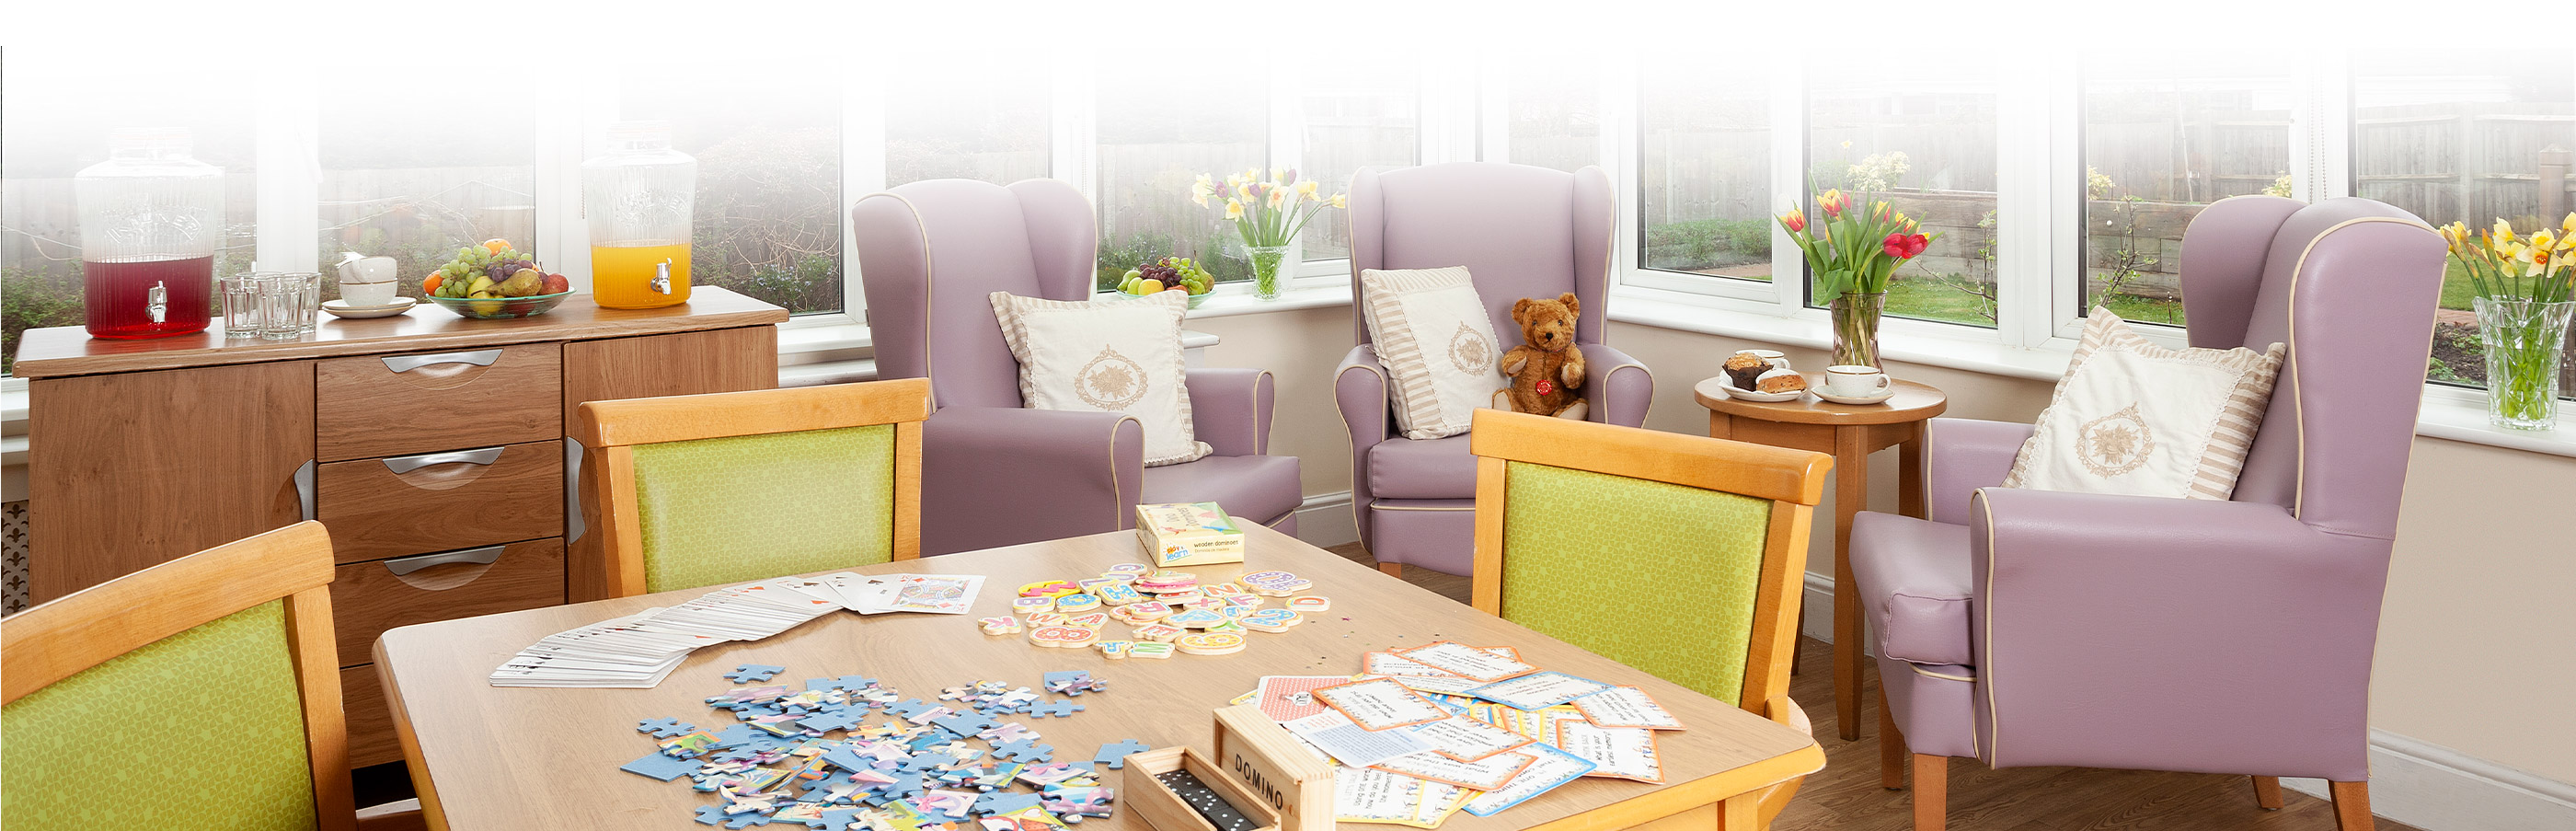 Living room with green and purple chairs and card games on table at Hamilton Nursing Home Surbiton